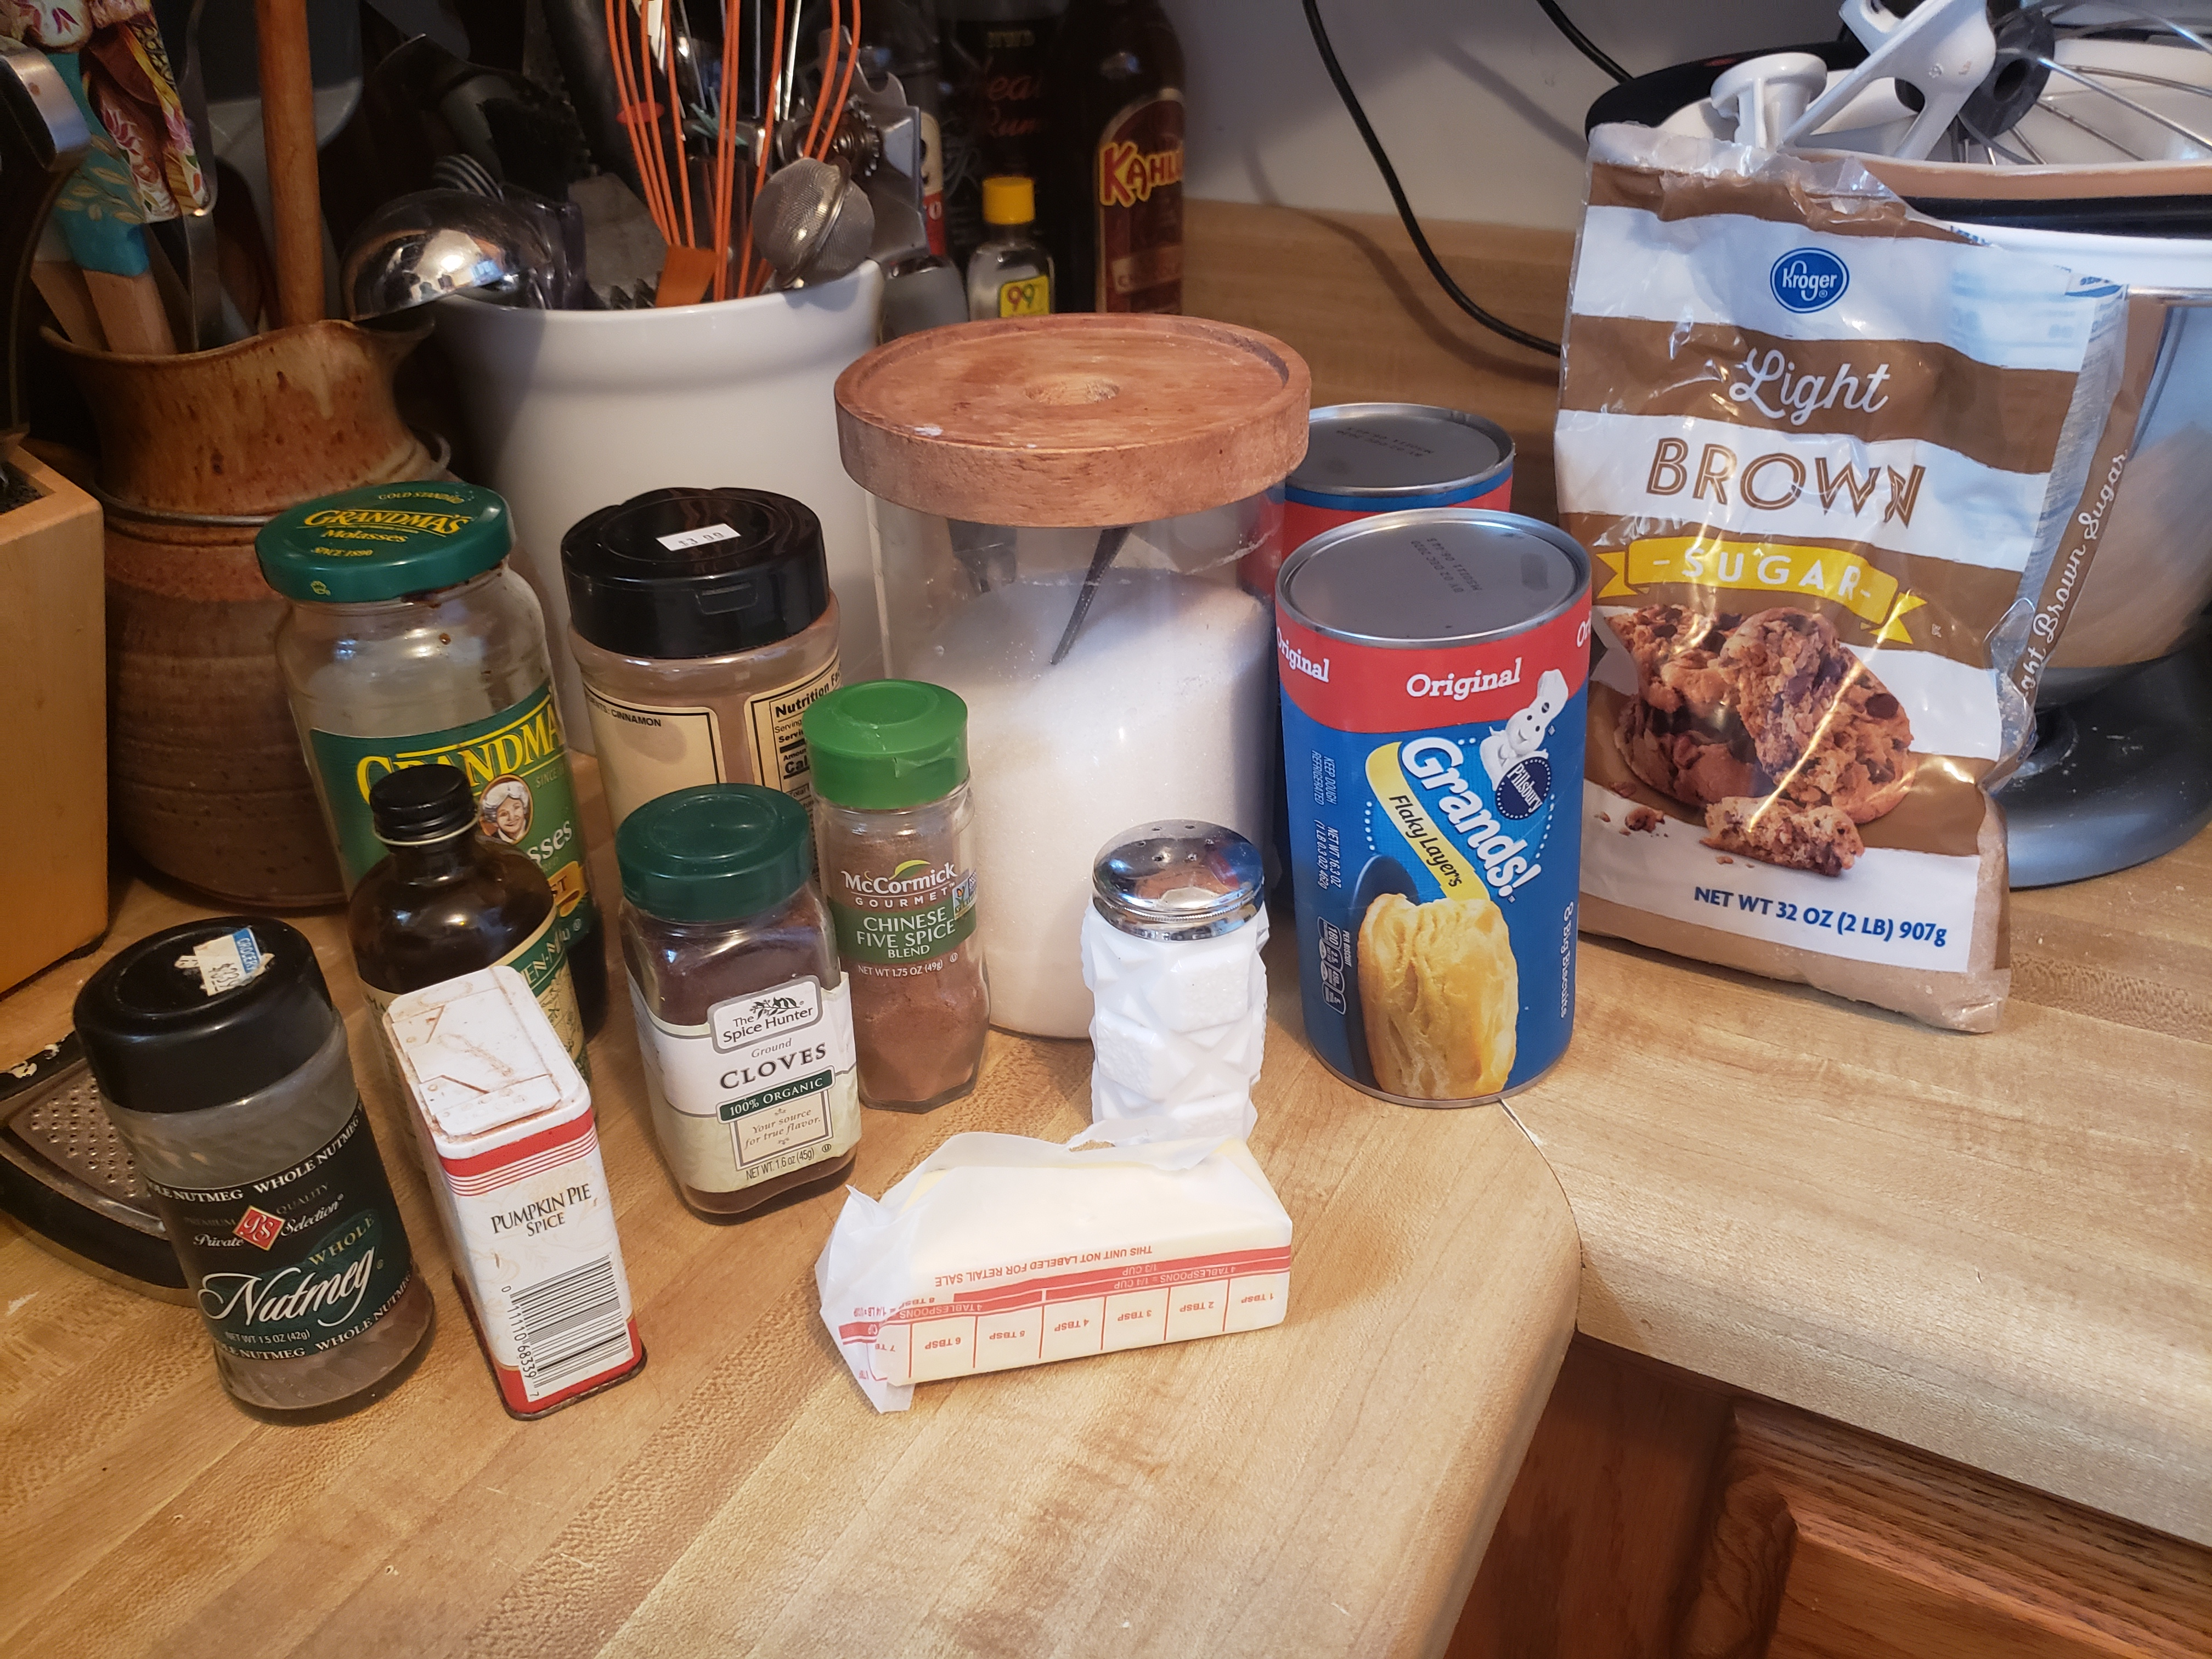 Photo of household ingredients to make Monkey bread